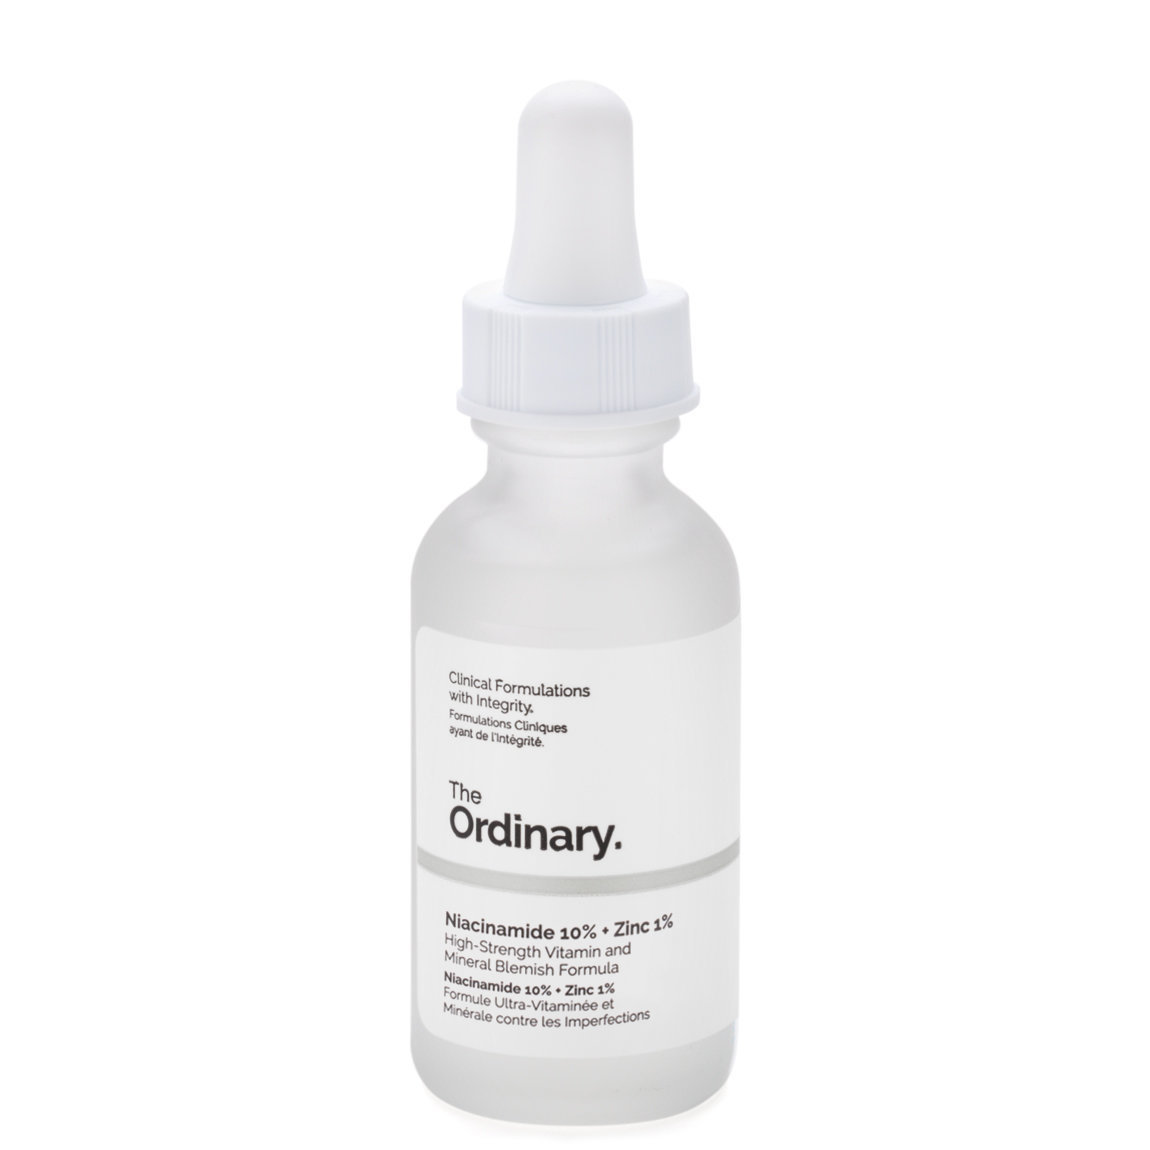 The Ordinary. Niacinamide 10% + Zinc 1% product smear.